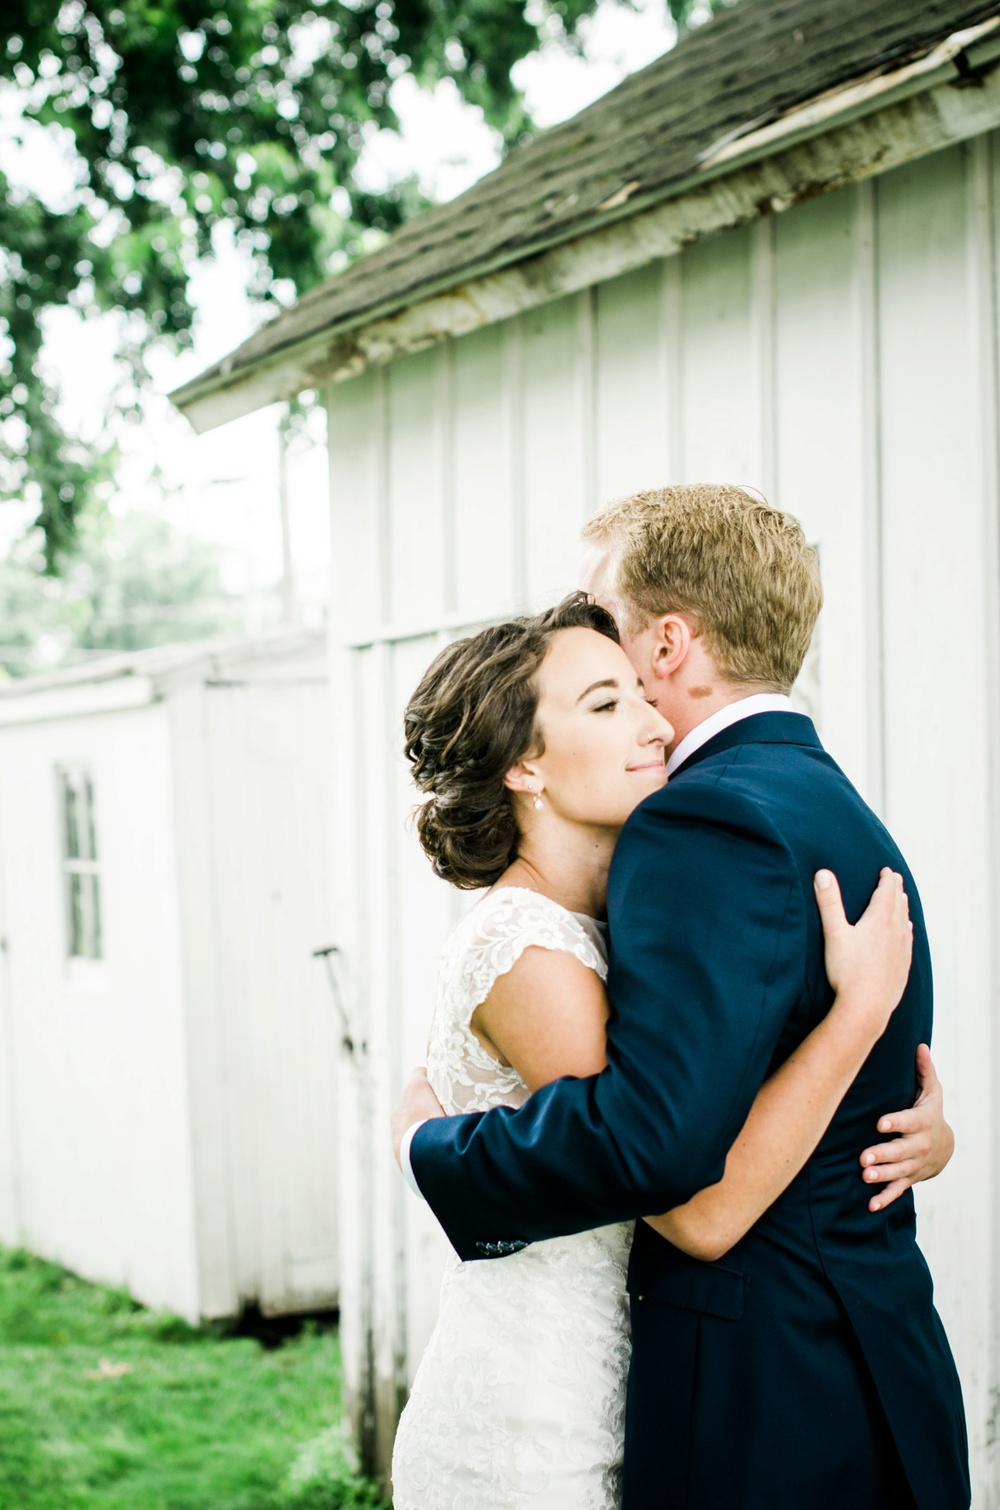 Palmer House and Stable Solon, IA | Ali Leigh Photo Minneapolis Wedding Photographer_0241.jpg